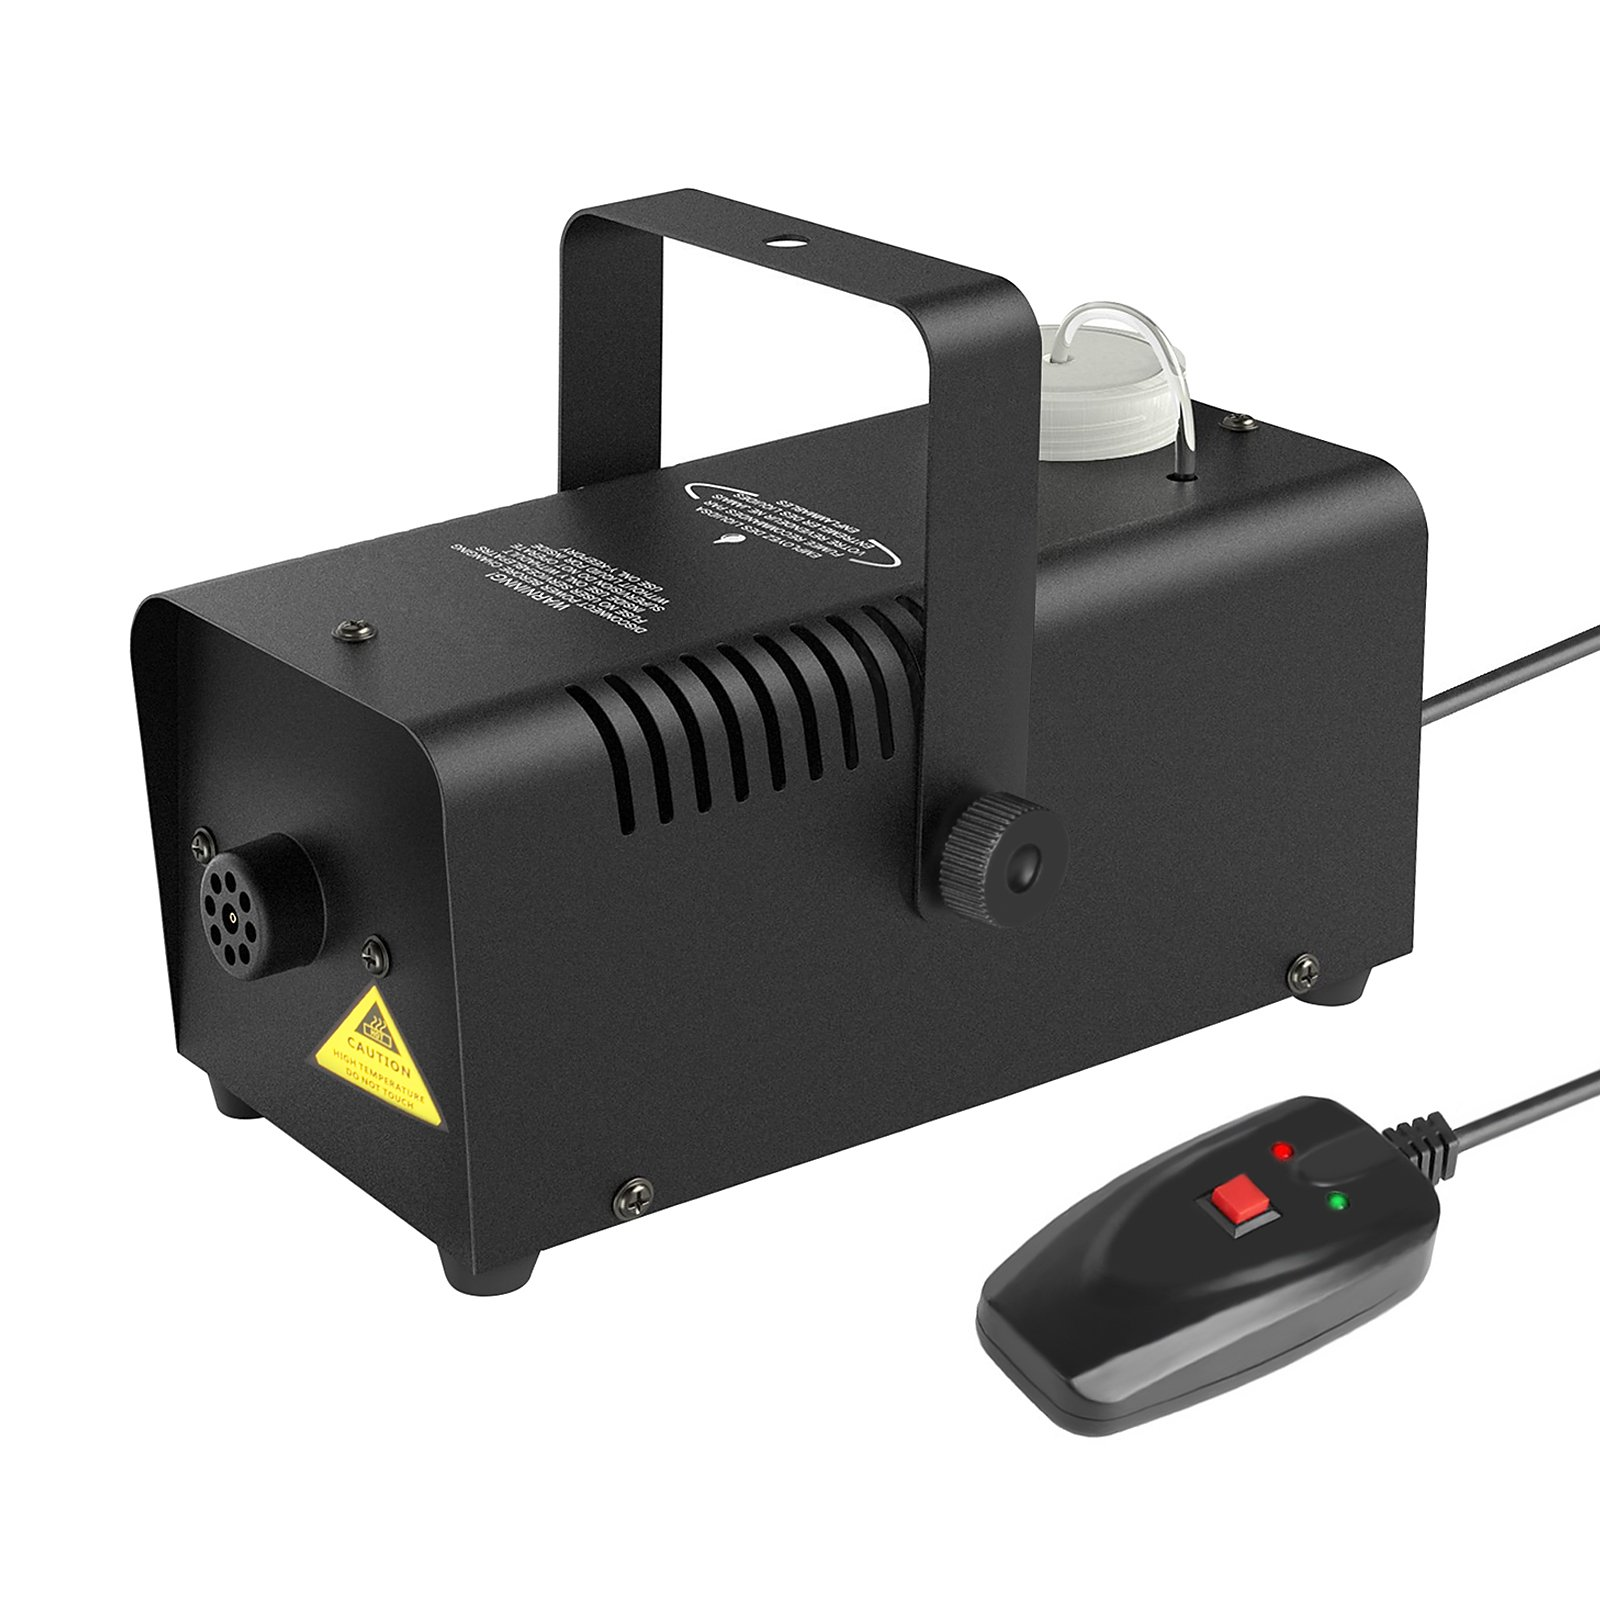 Portable Fog Machine 400-Watt Wired Remote Controlled Stage Smoke Machine for Halloween Party Weddings